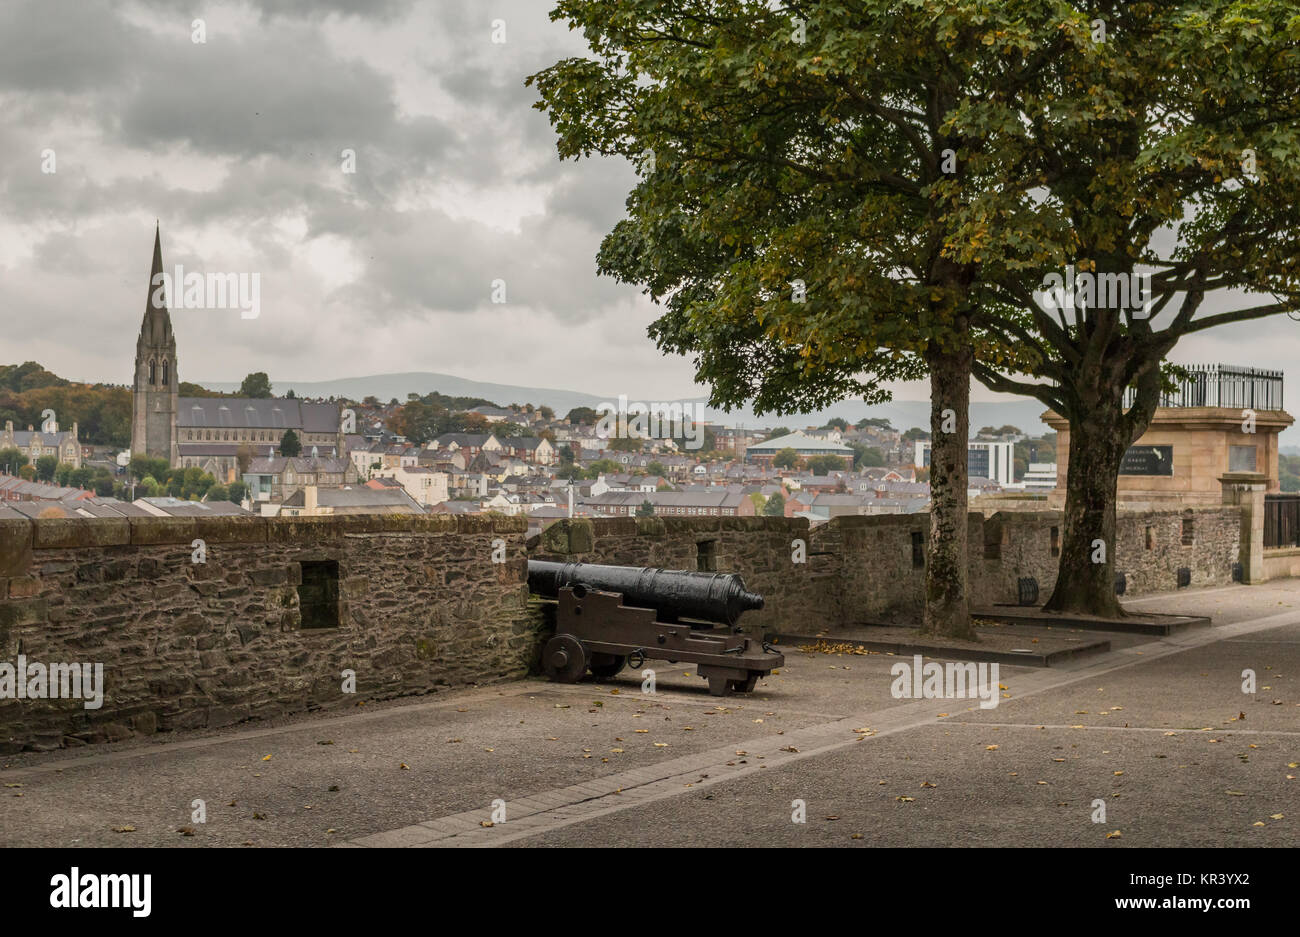 dating derry northern ireland Londonderry, locally and historically derry and irish doire, city and the larger district that encompasses it, formerly in the even larger county londonderry, northwestern northern ireland.